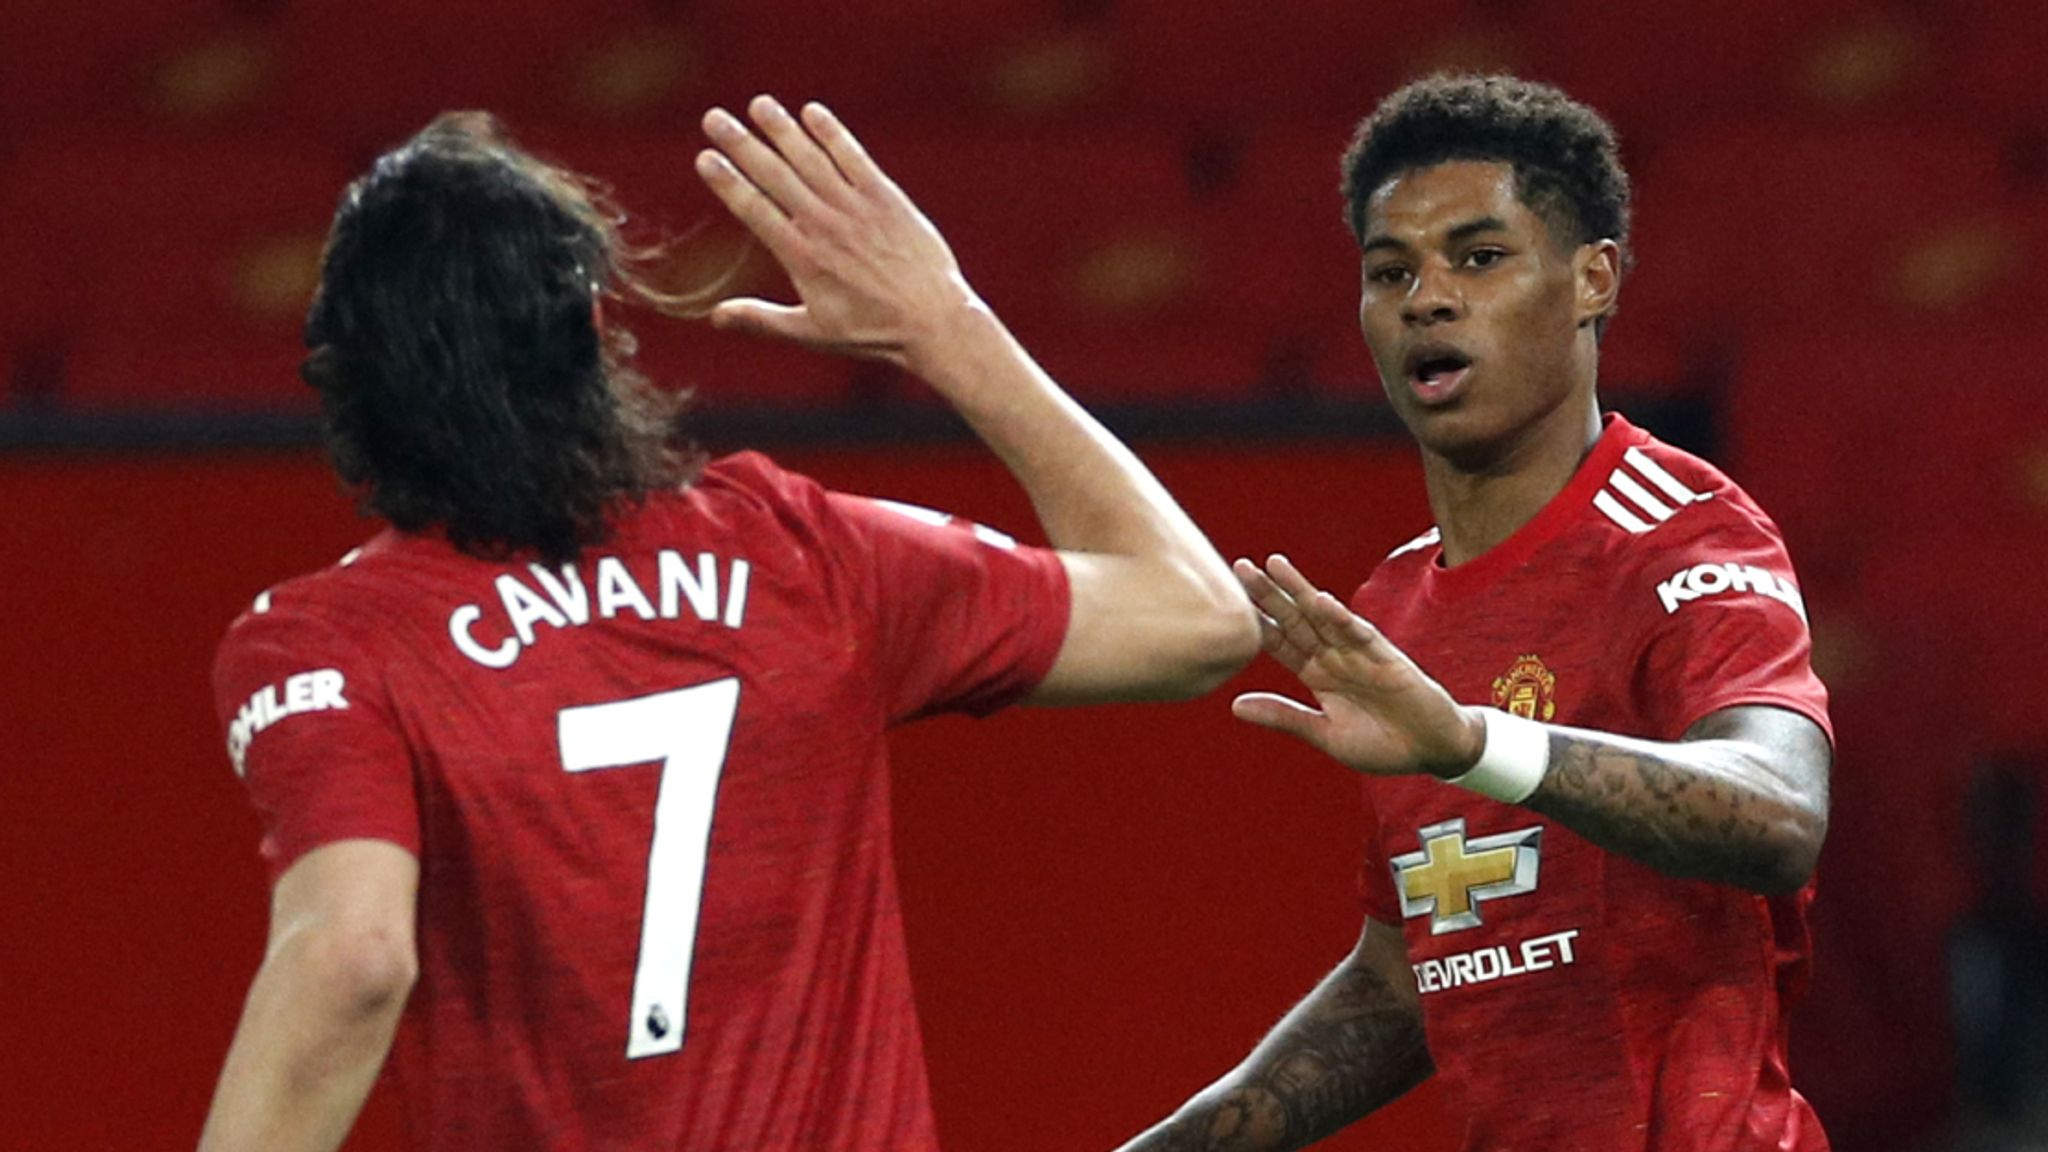 Granada CF vs Manchester United: Prediction, Lineups, Team News, Betting Tips & Match Previews